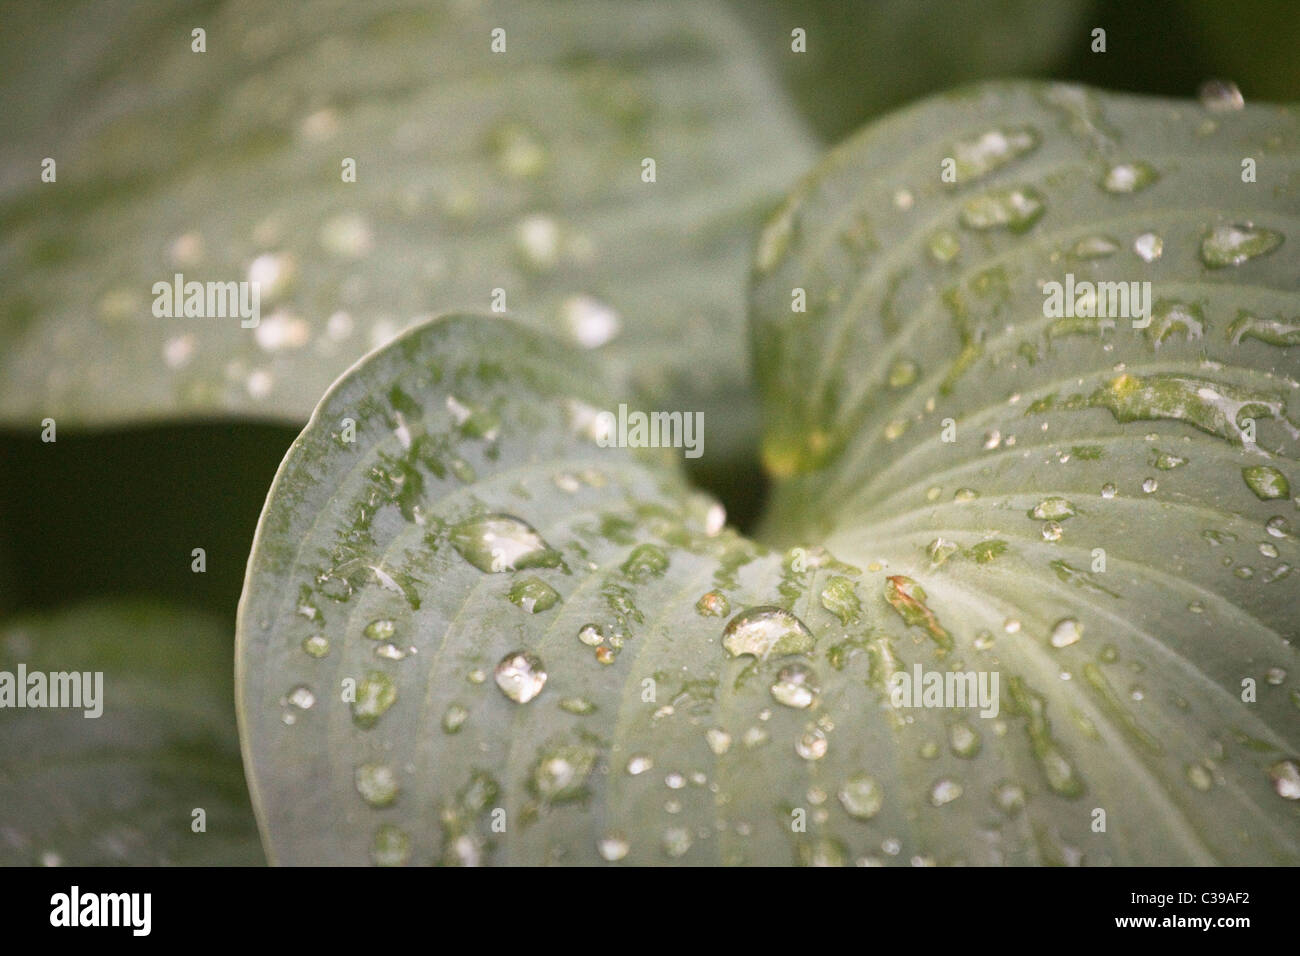 leaf with water dew droplets - Stock Image